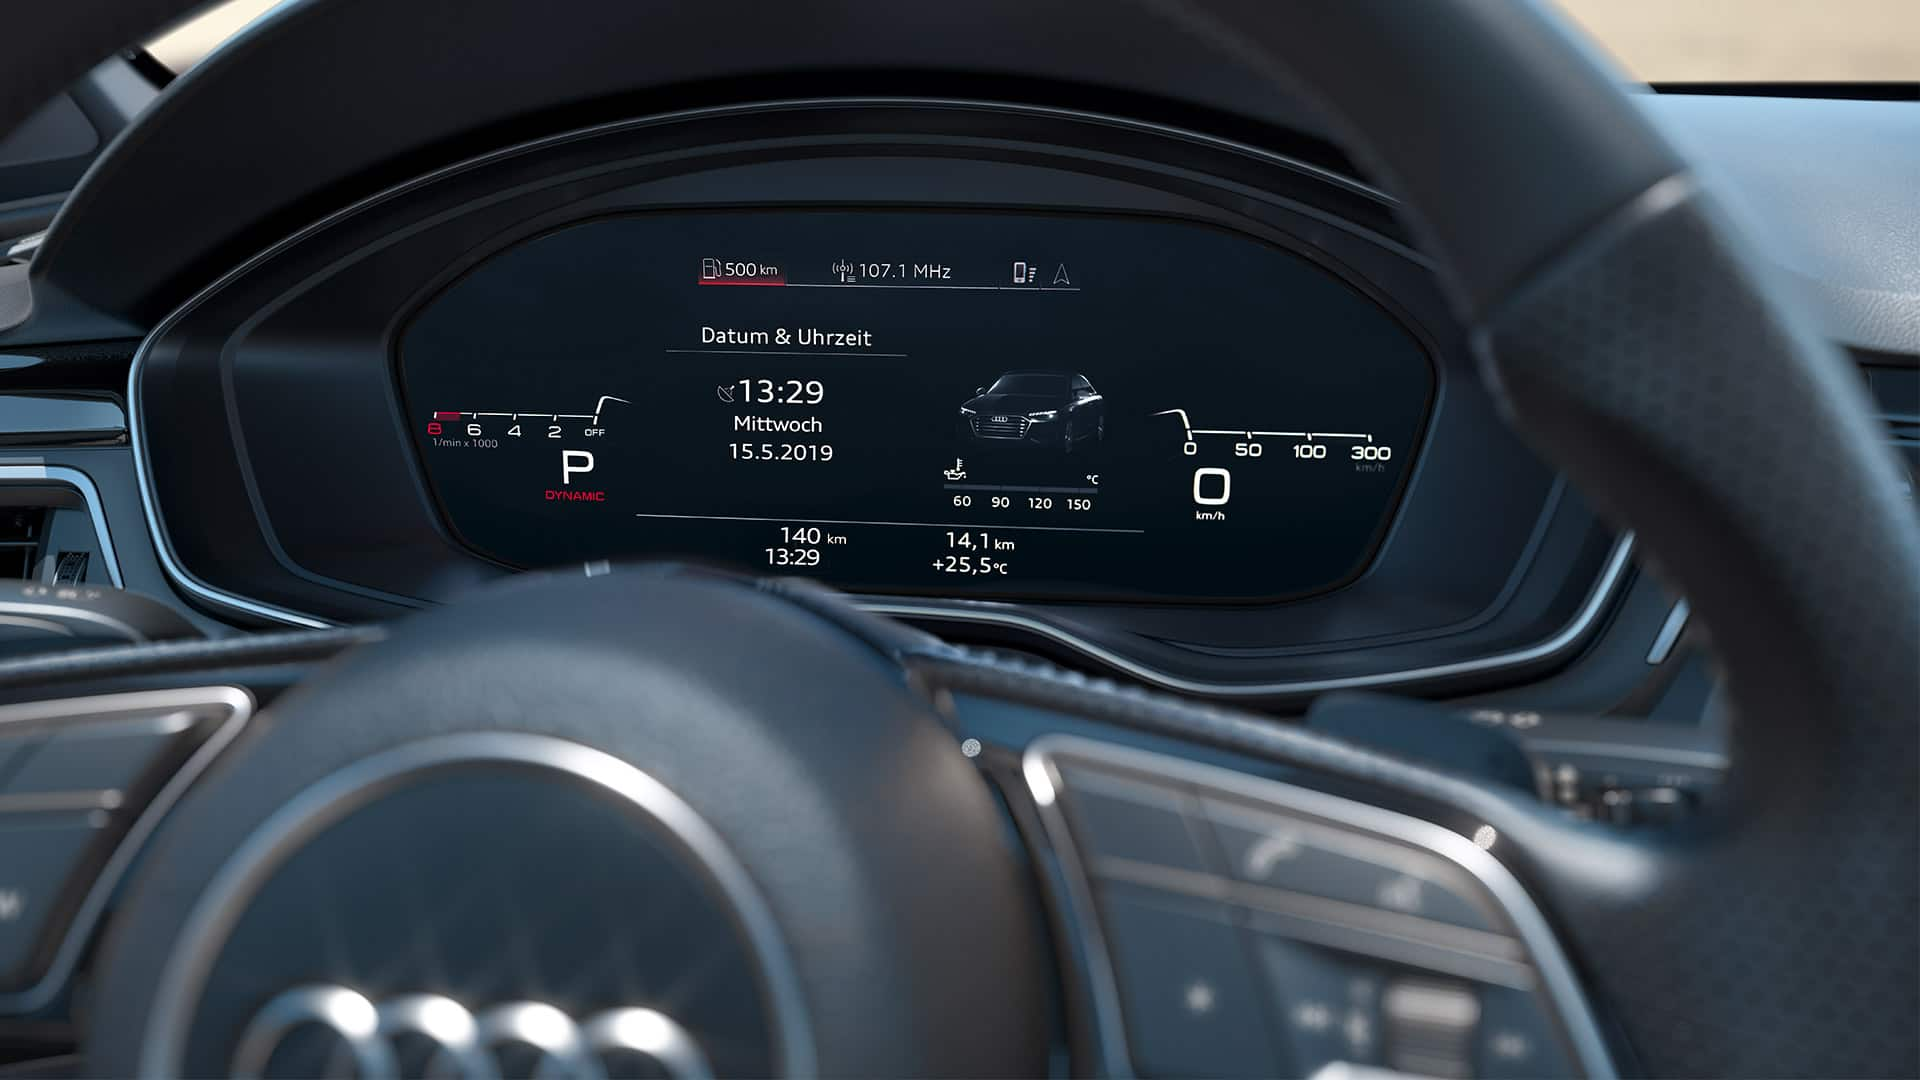 Audi virtual cockpit van de Audi S4 Berline